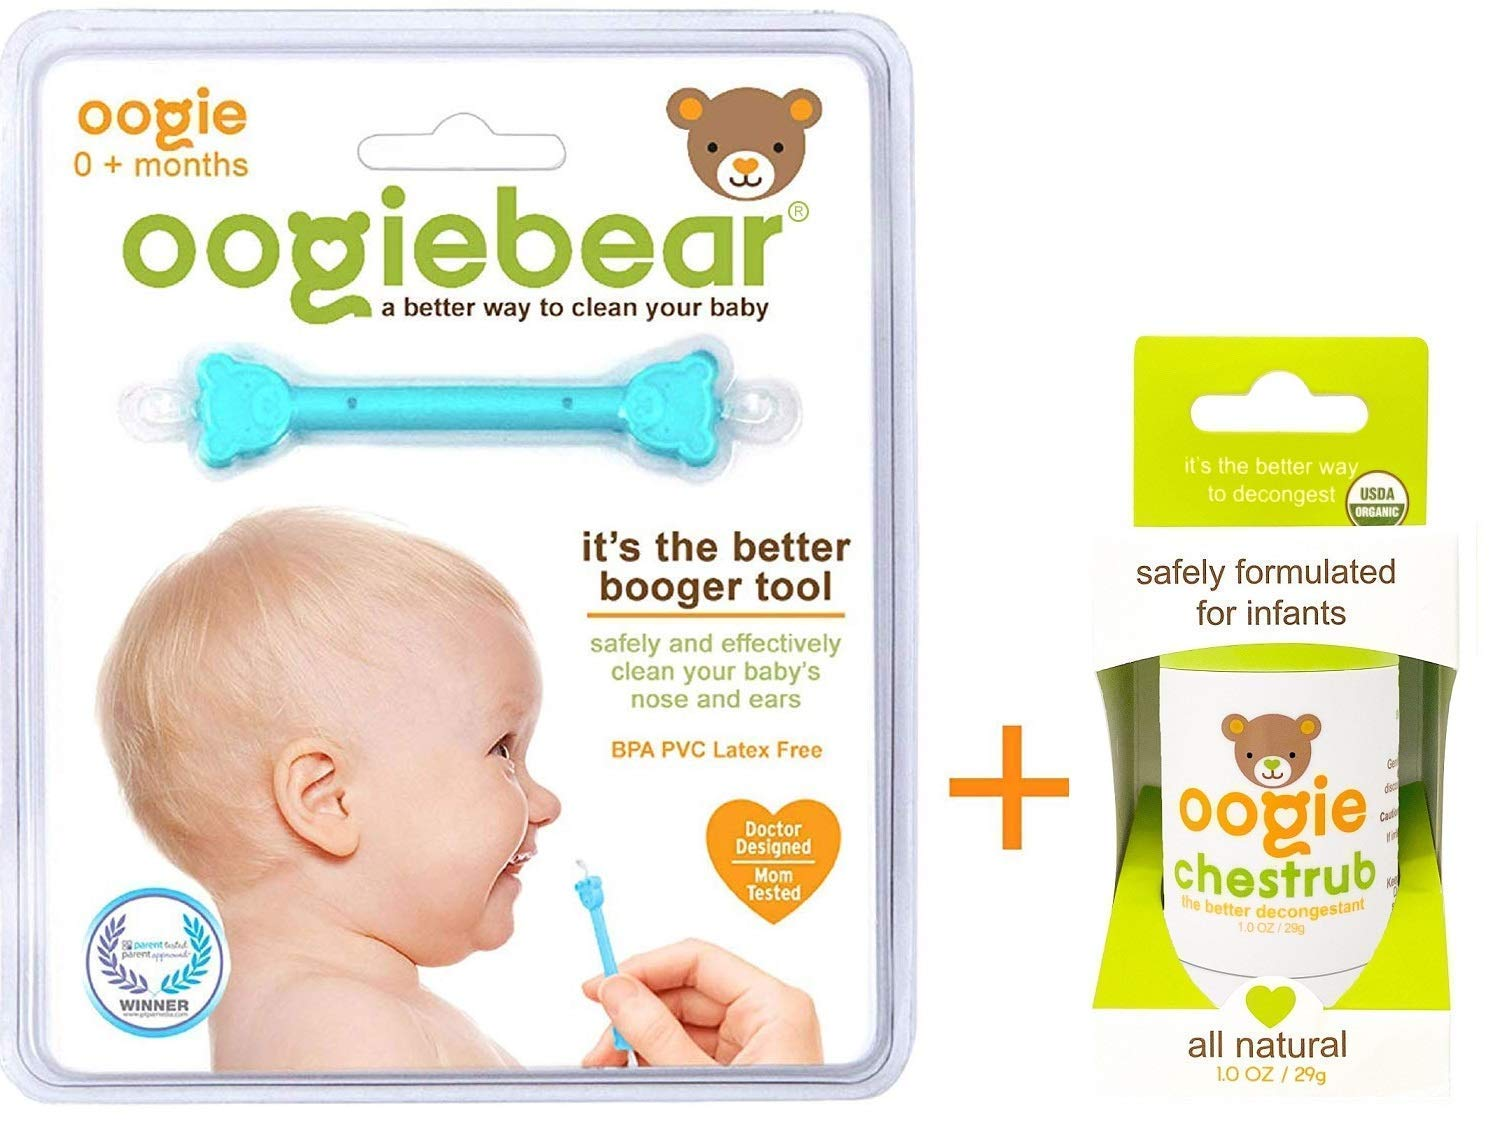 Snot and Ear Cleaner Tool Oogie Bundle 1oz chestrub Ointment for Easing Airways and Nasal Congestion; USDA Certified and oogiebear The Safe Baby Newborn Nasal Booger